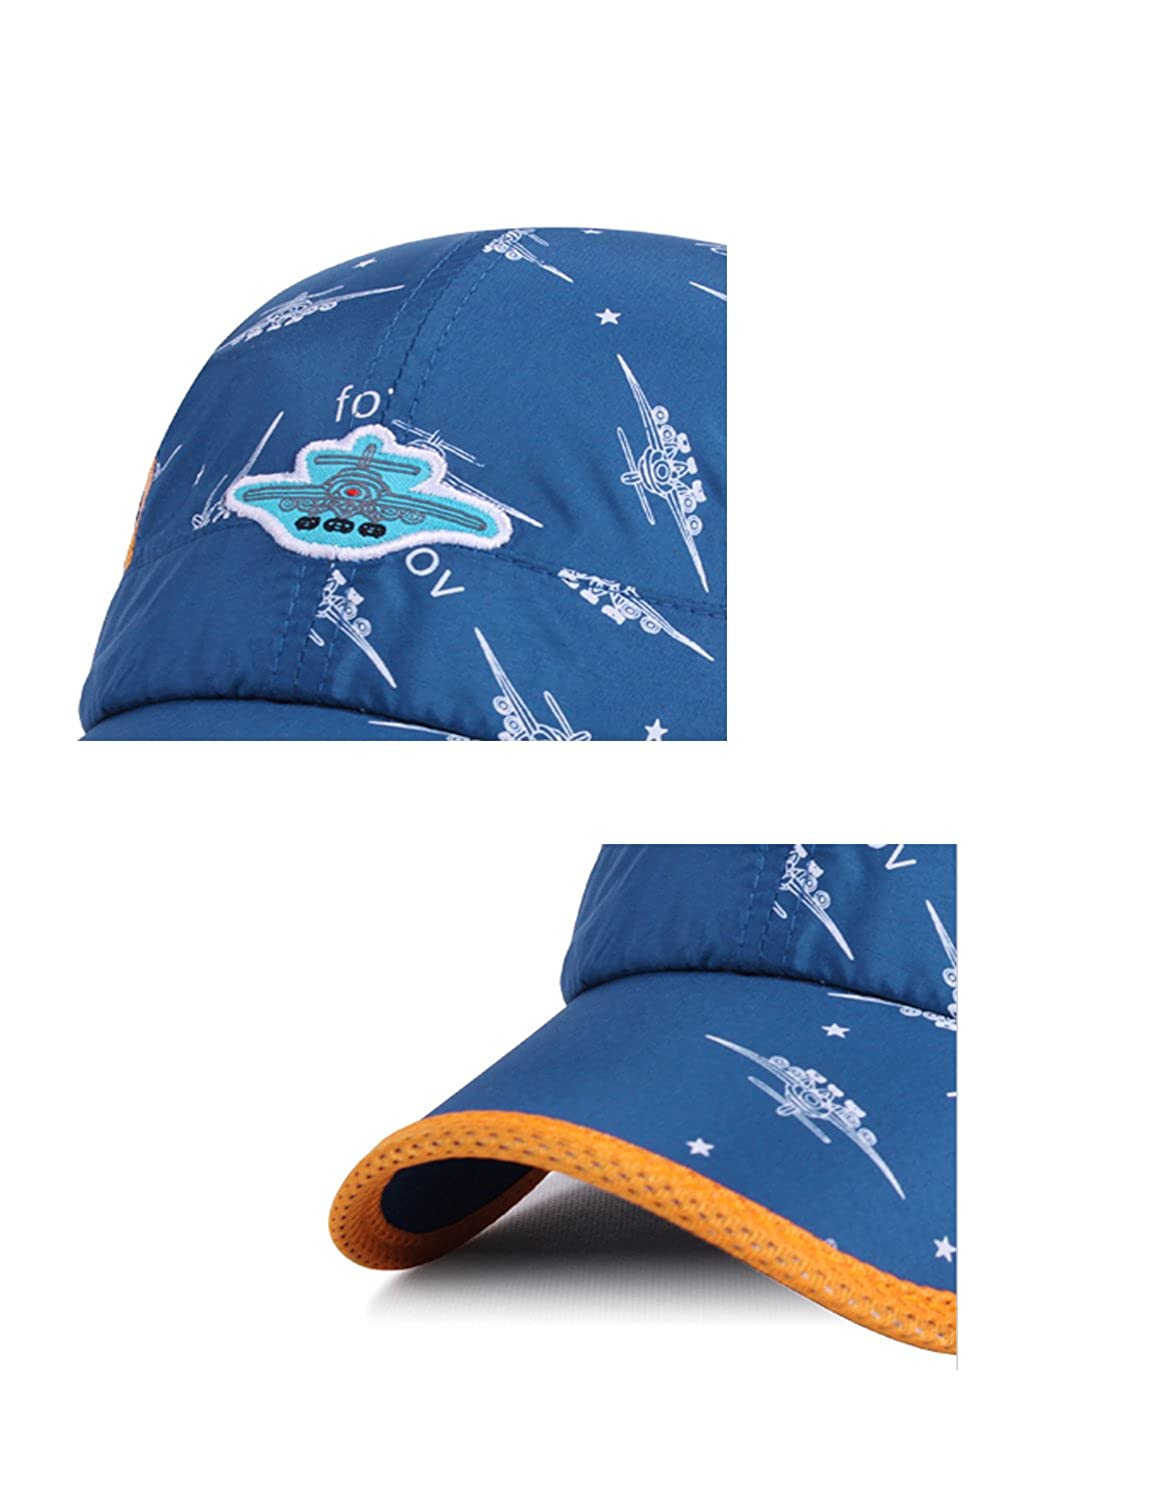 a069637c52a Amazon.com  Kids Boys Girls Cool Summer Baseball Caps Lightweight Quick Dry  Sun Hat(3Y-8Y)  Clothing